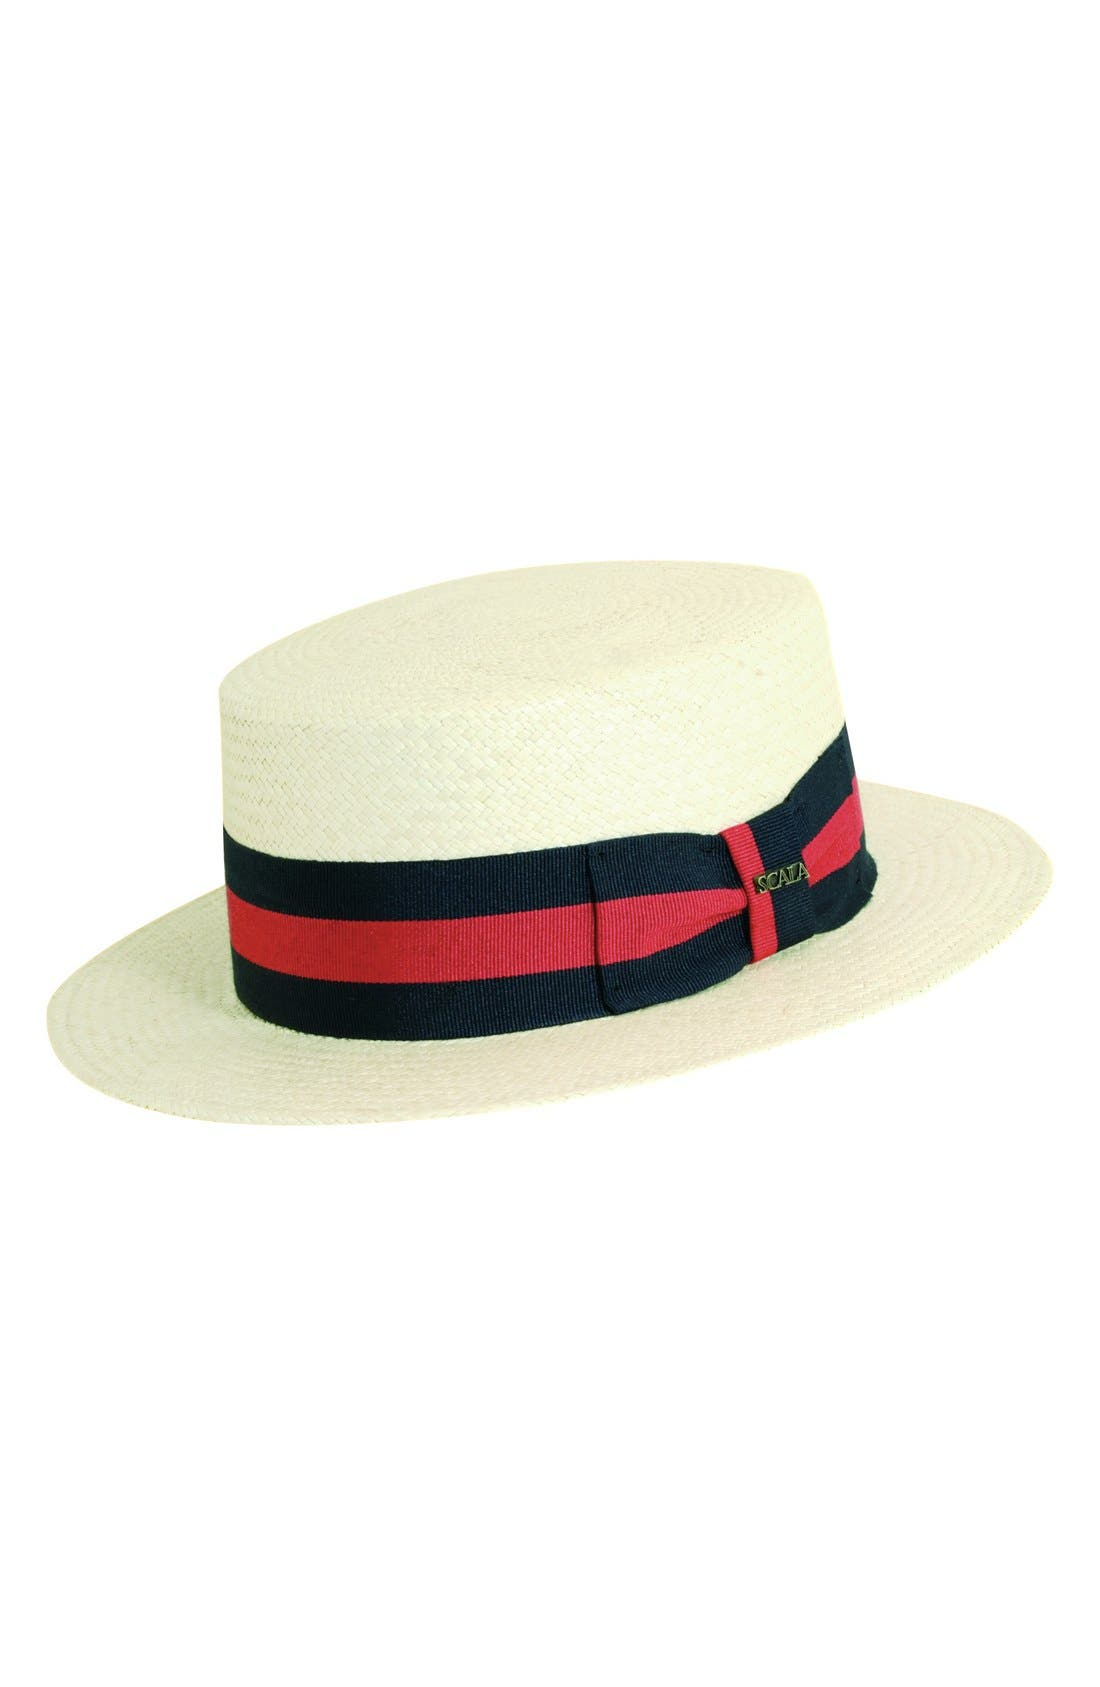 Scala Panama Straw Boater Hat